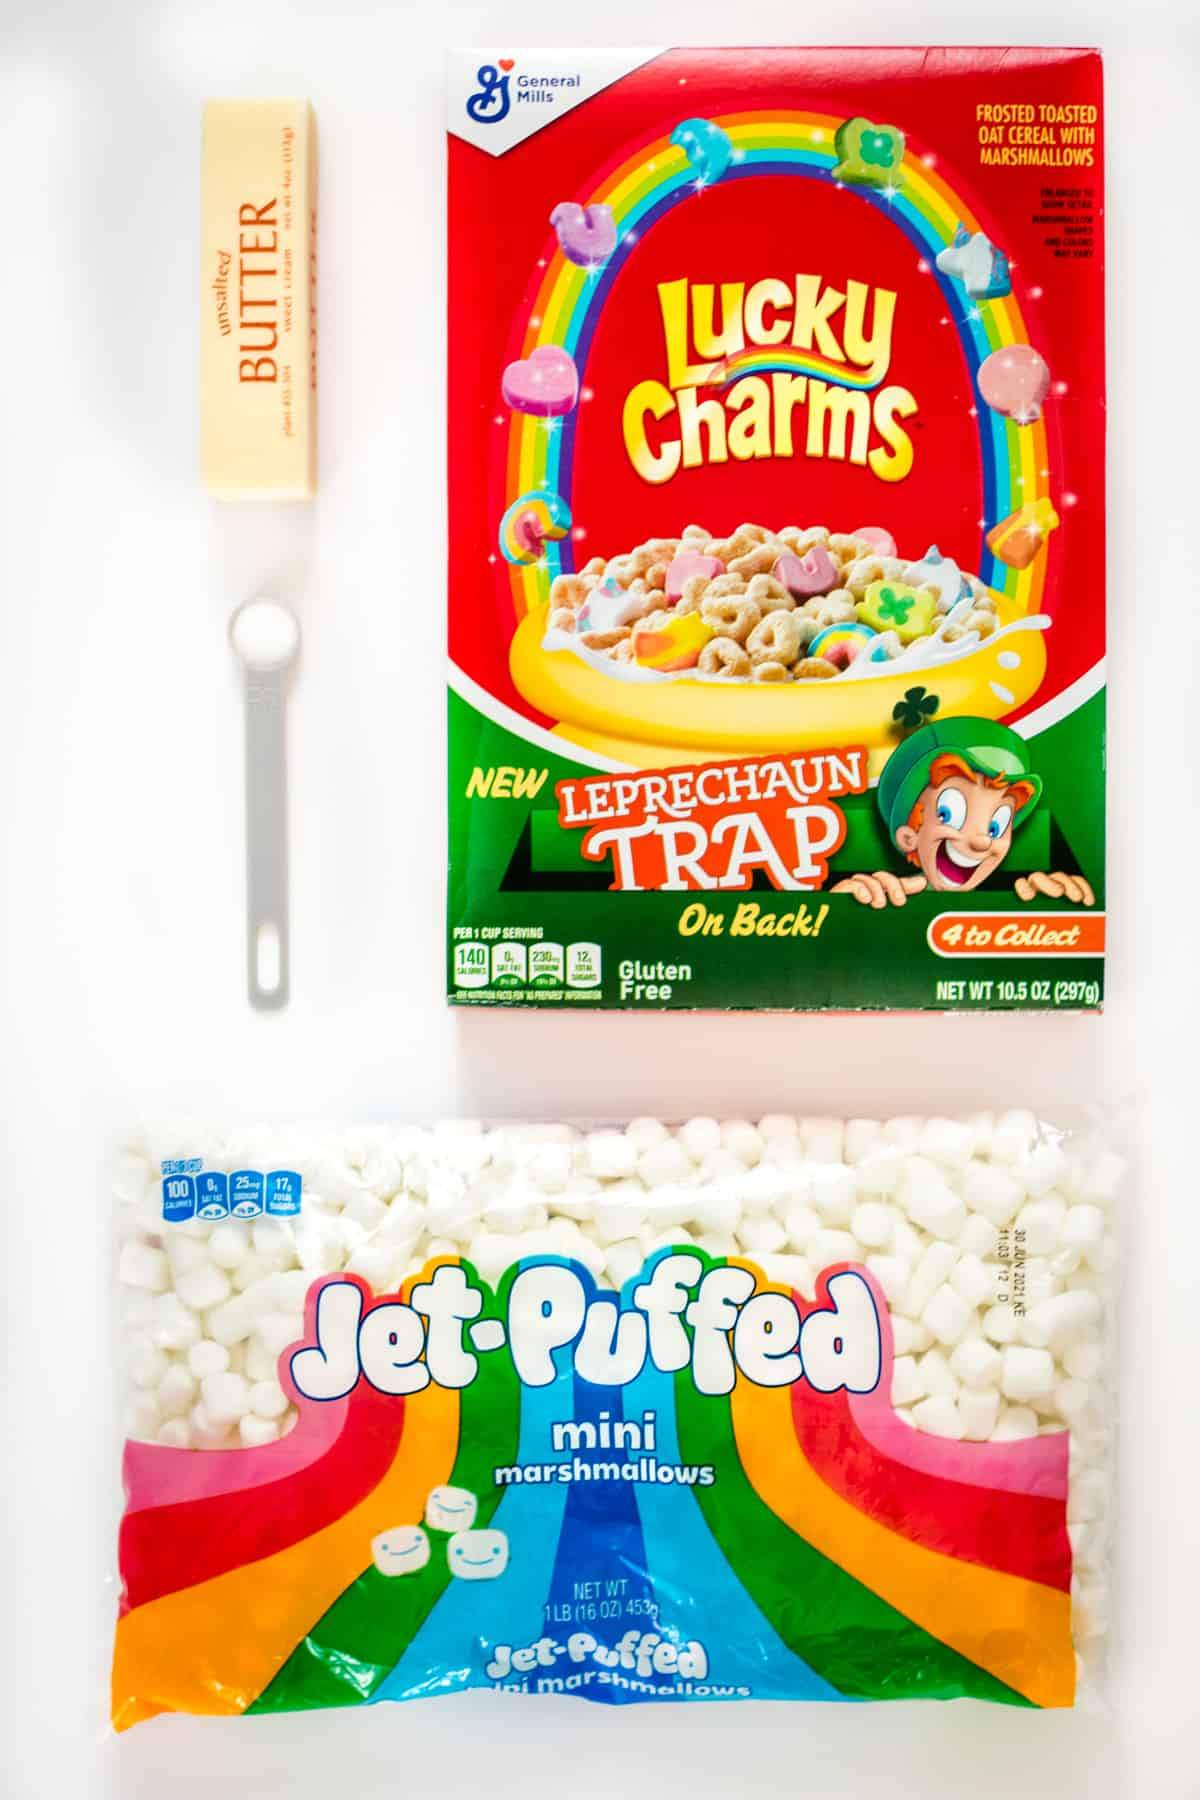 Stick of unsalted butter, half teaspoon of salt, 10.5 ounce box of Lucky Charms cereal, 16 ounce bag of mini marshmallows